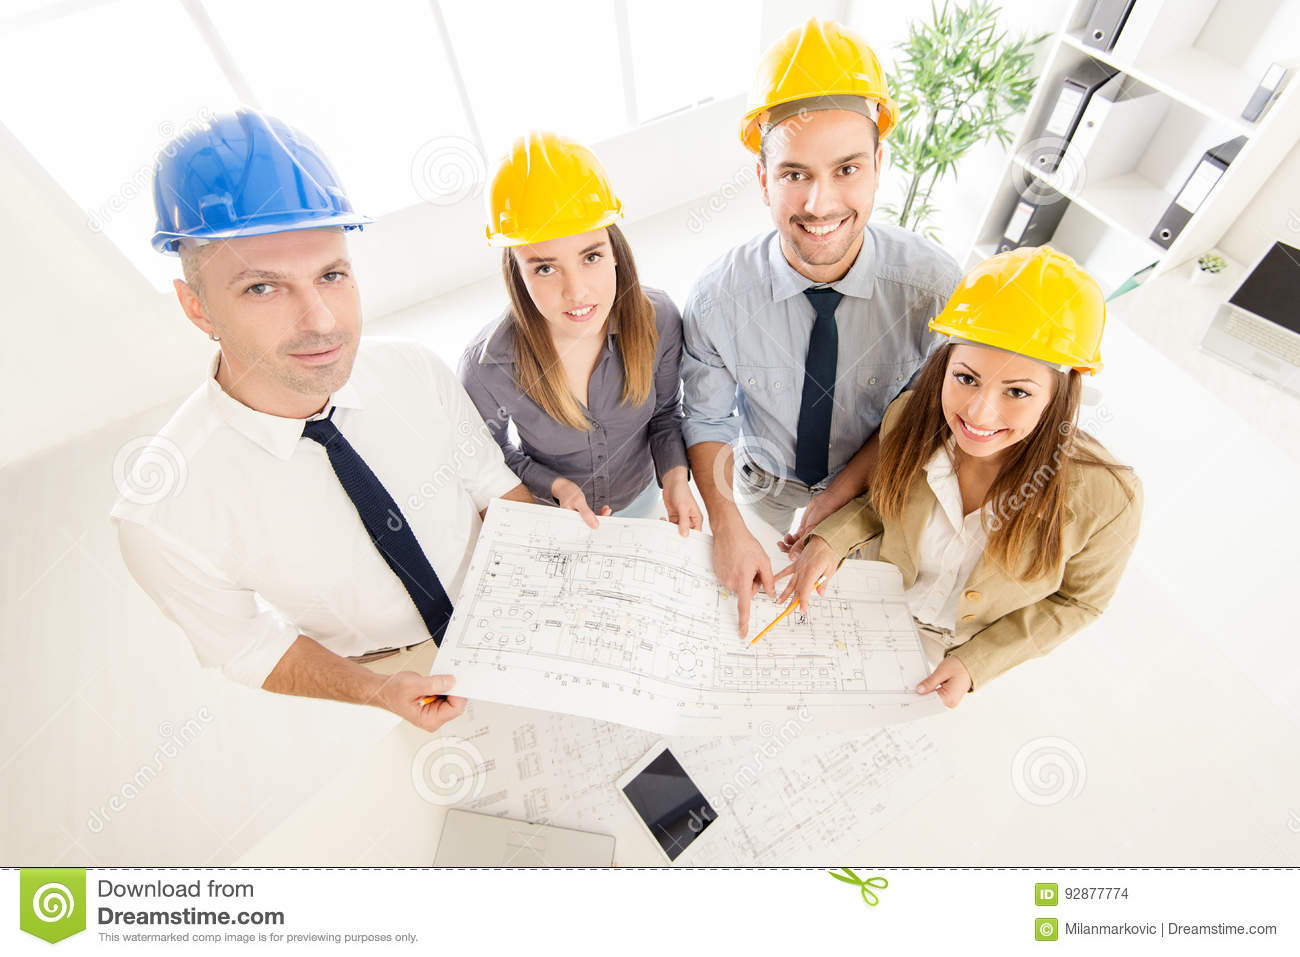 Successful Architects successful architects team stock photo - image: 92877774